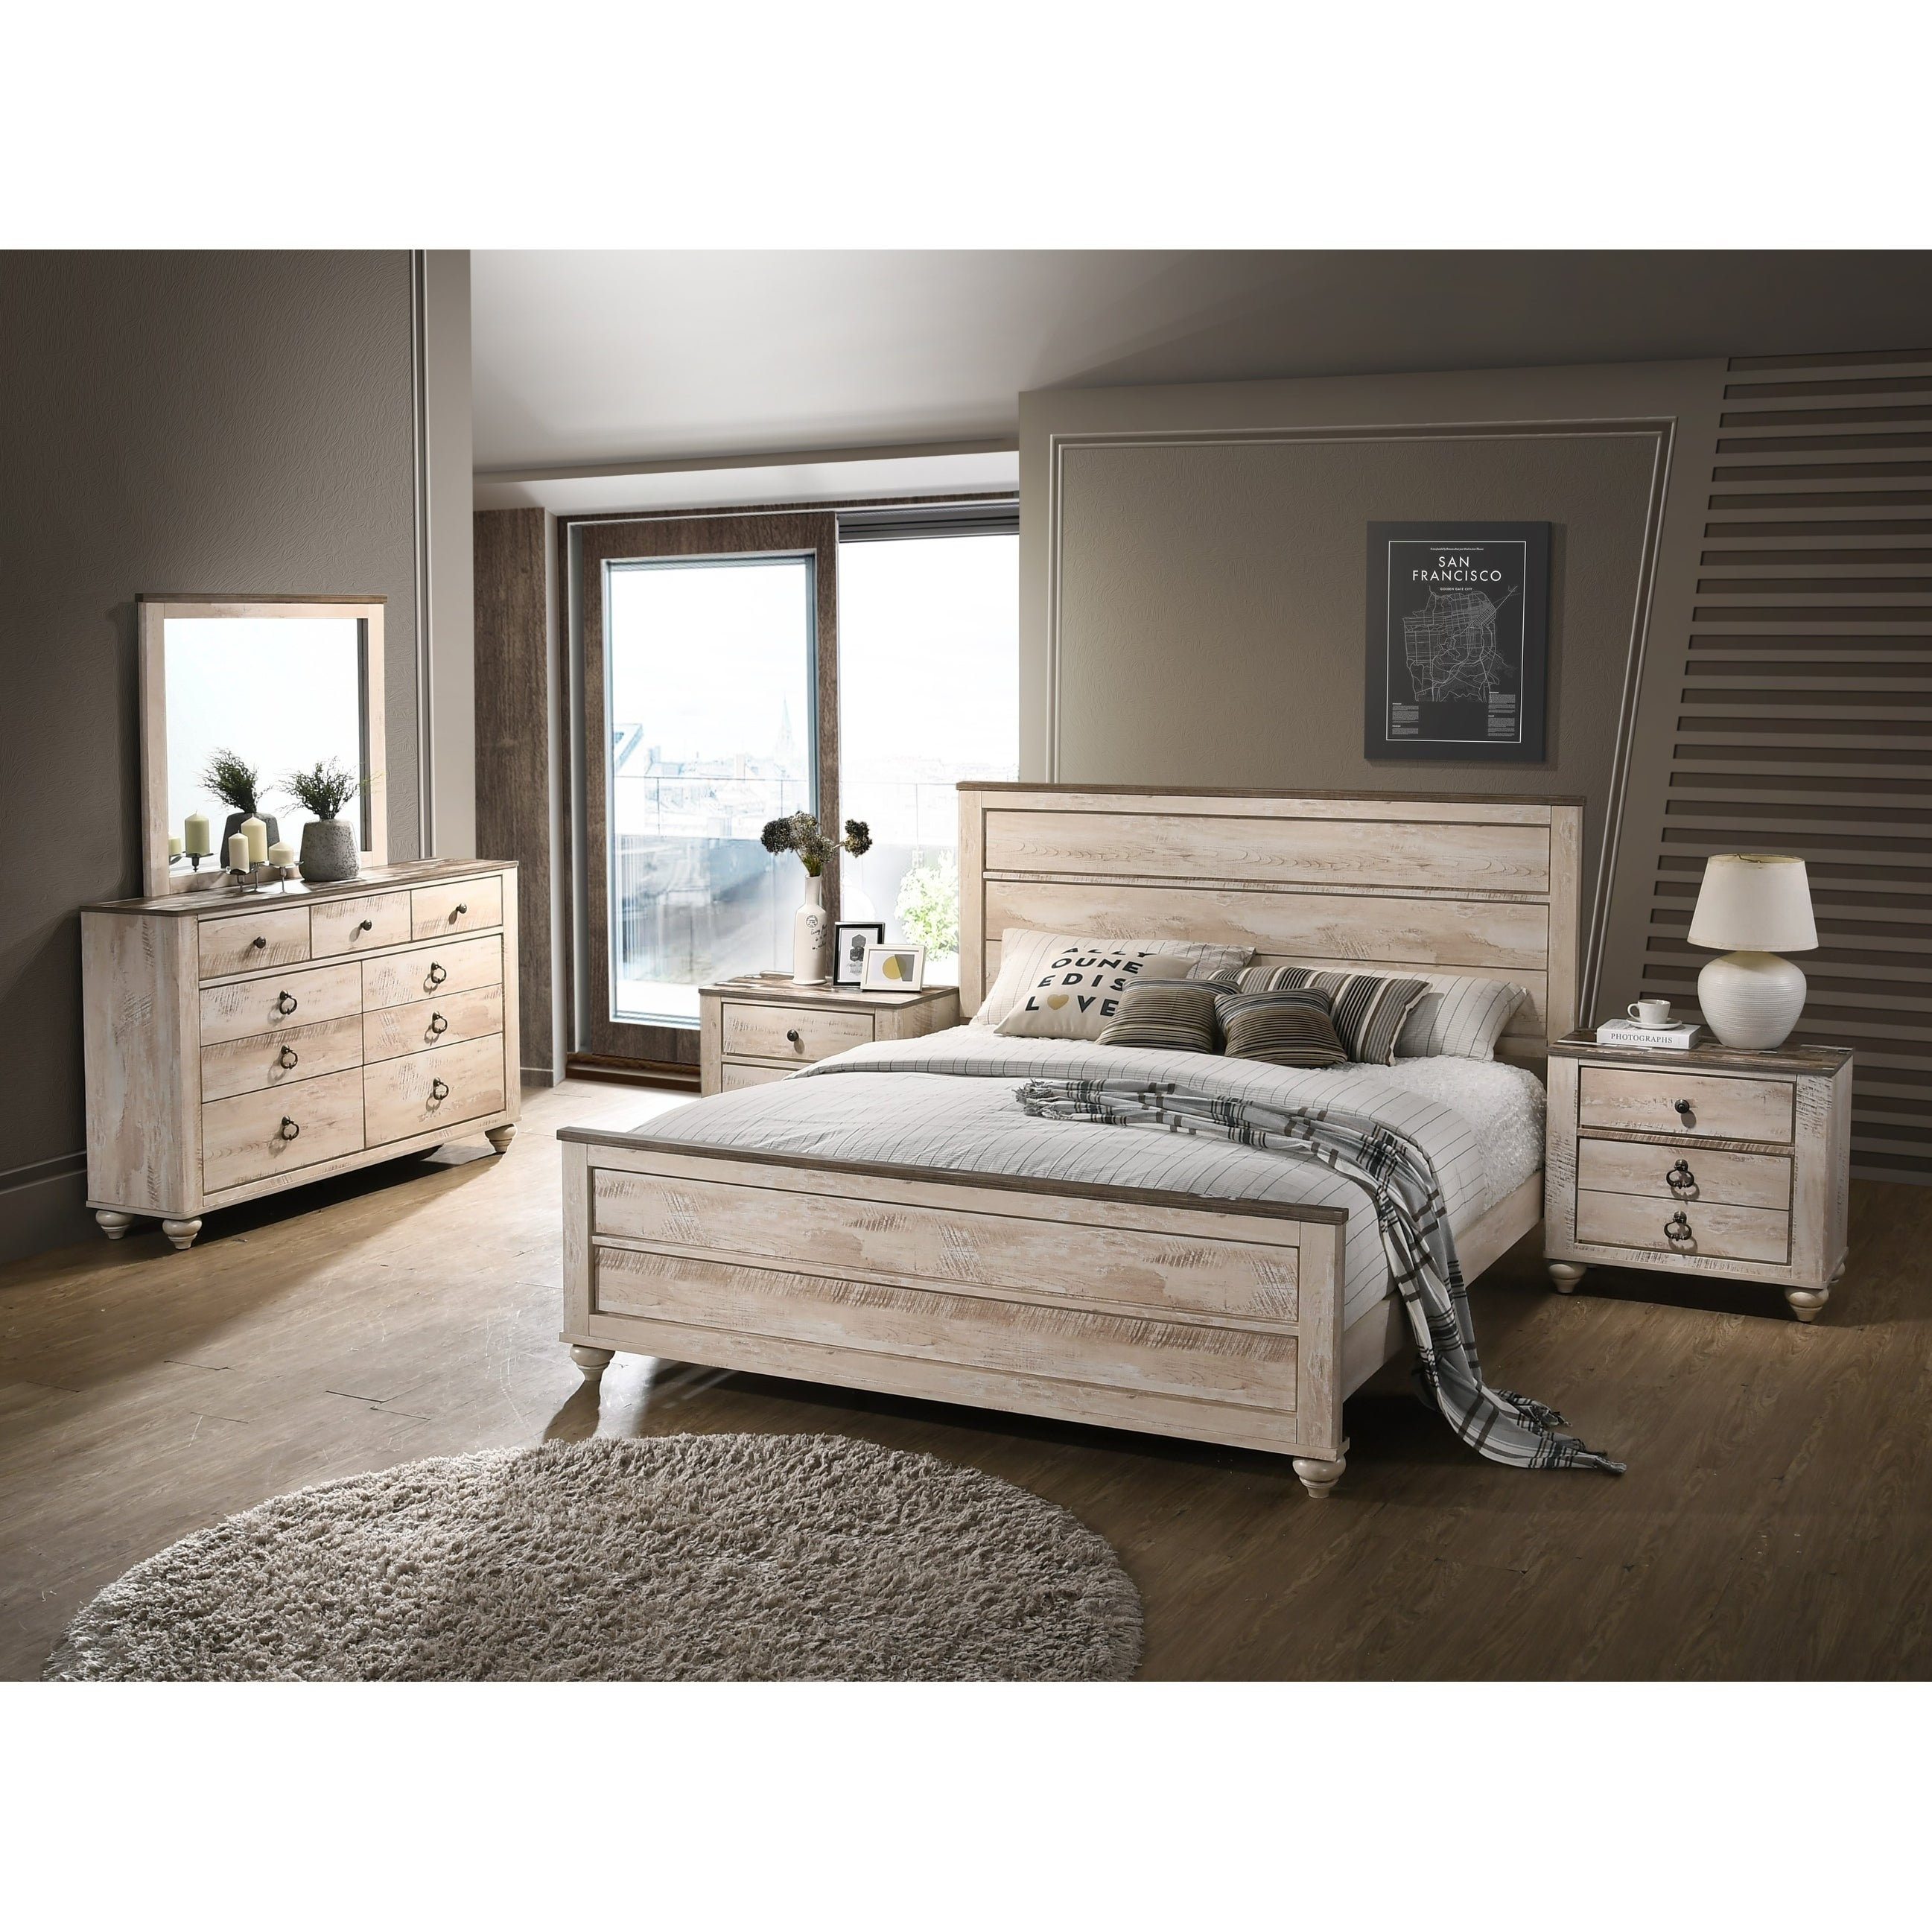 Shop Imerland Contemporary White Wash Finish 5 Piece Bedroom Set, Queen    Free Shipping Today   Overstock.com   19758676